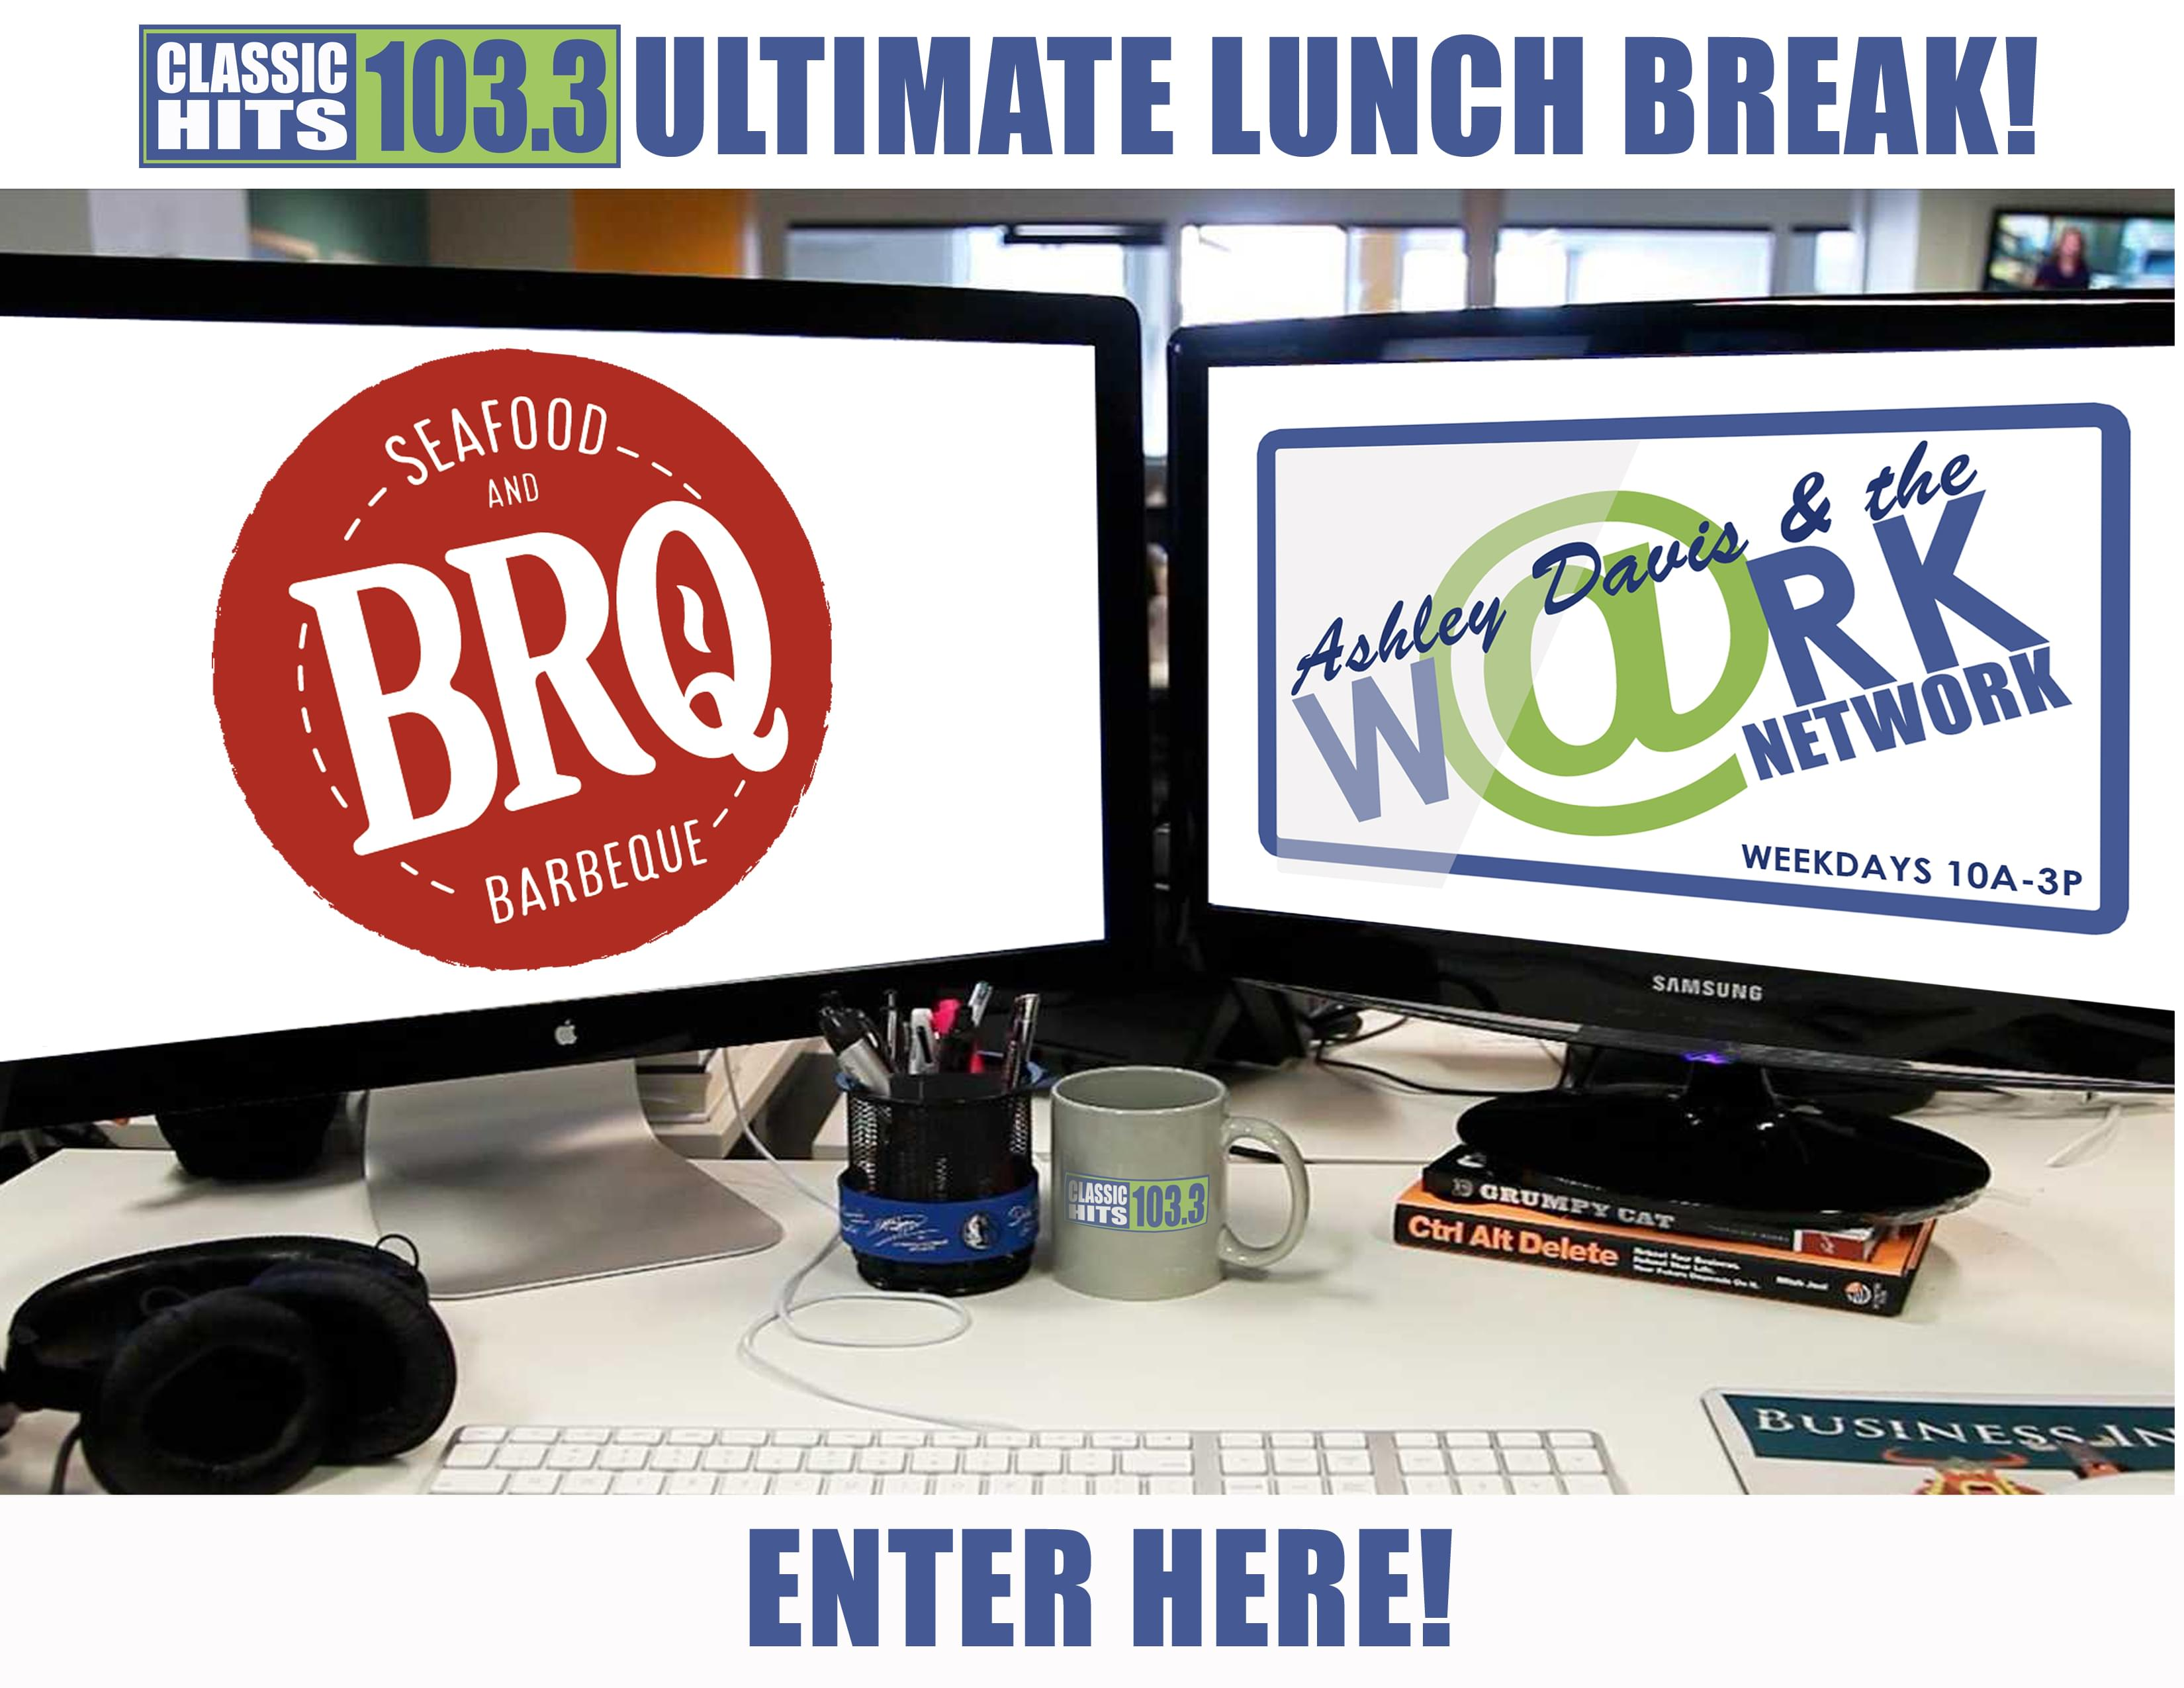 Classic Hits 103.3 Ultimate Lunch Break